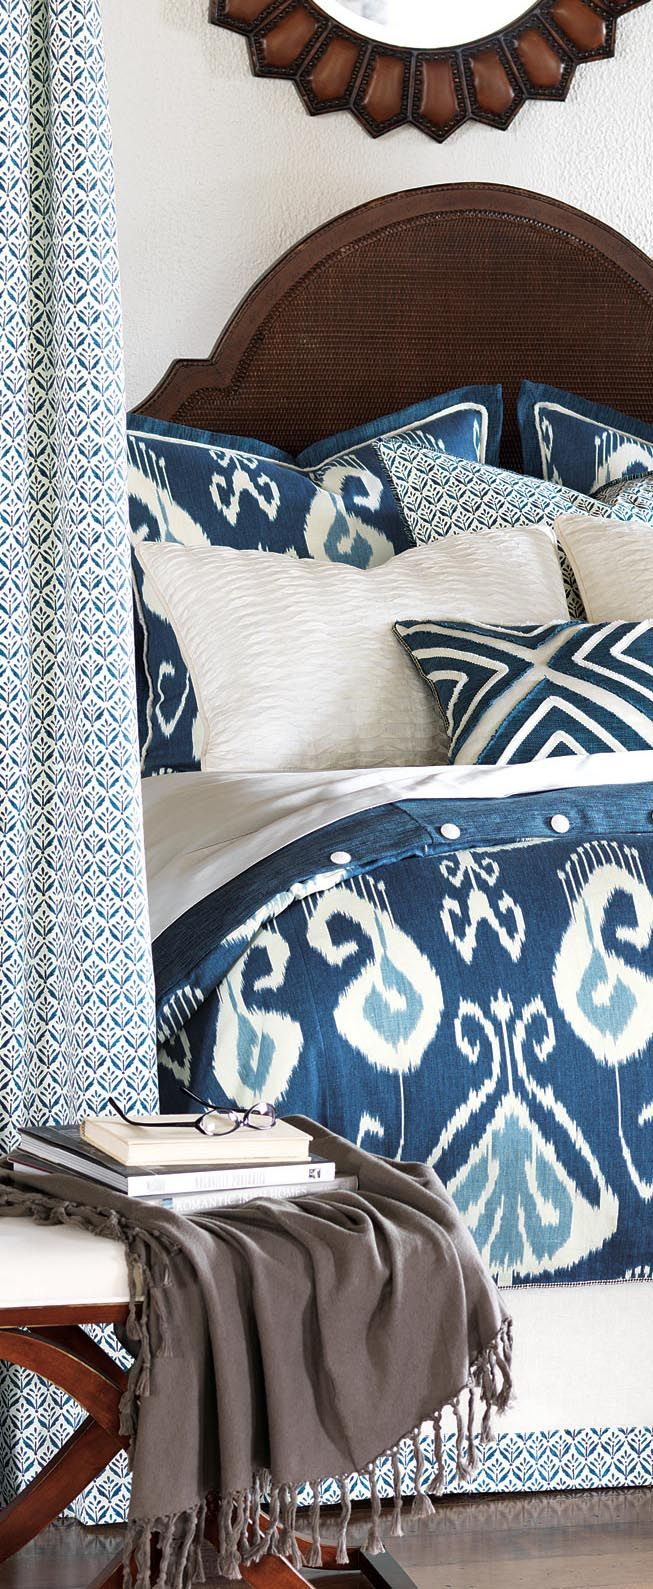 best eastern accents images on pinterest - eastern accents ceylon bedding